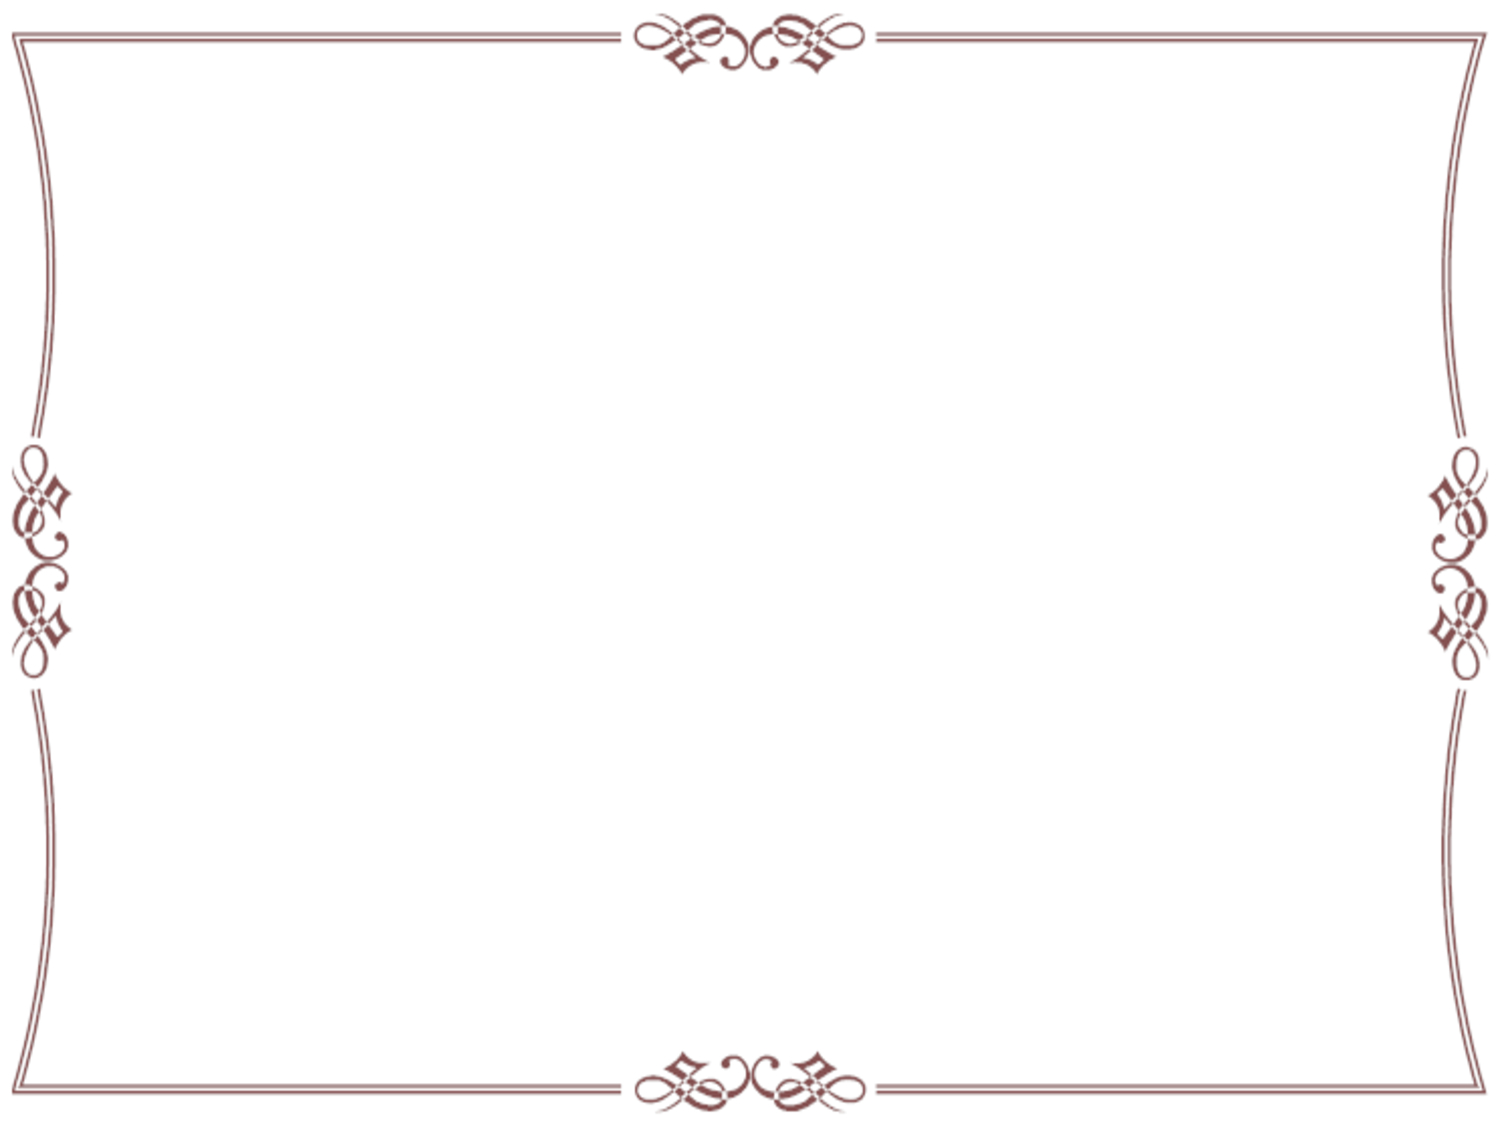 Free Simple Certificate Borders, Download Free Clip Art Intended For Certificate Border Design Templates